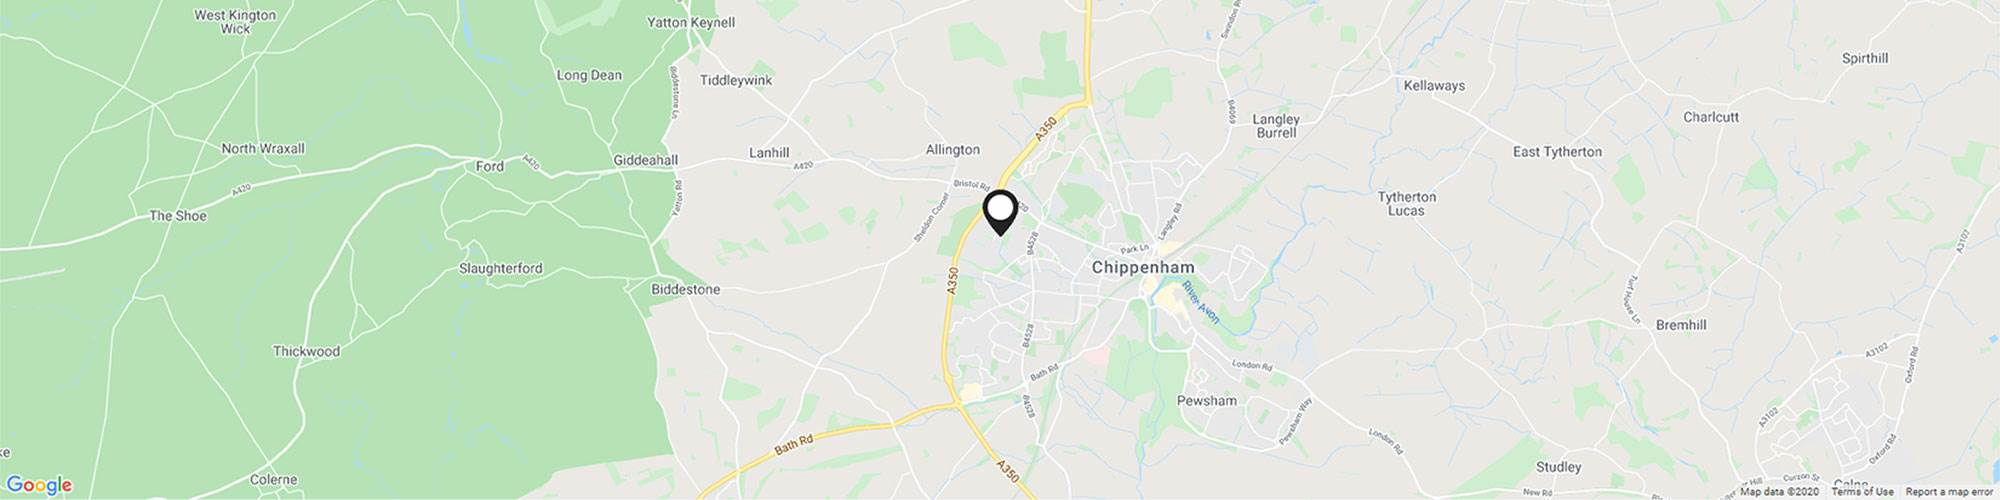 Close up map showing specific Bumpers Farm Chippenham Motor Company location